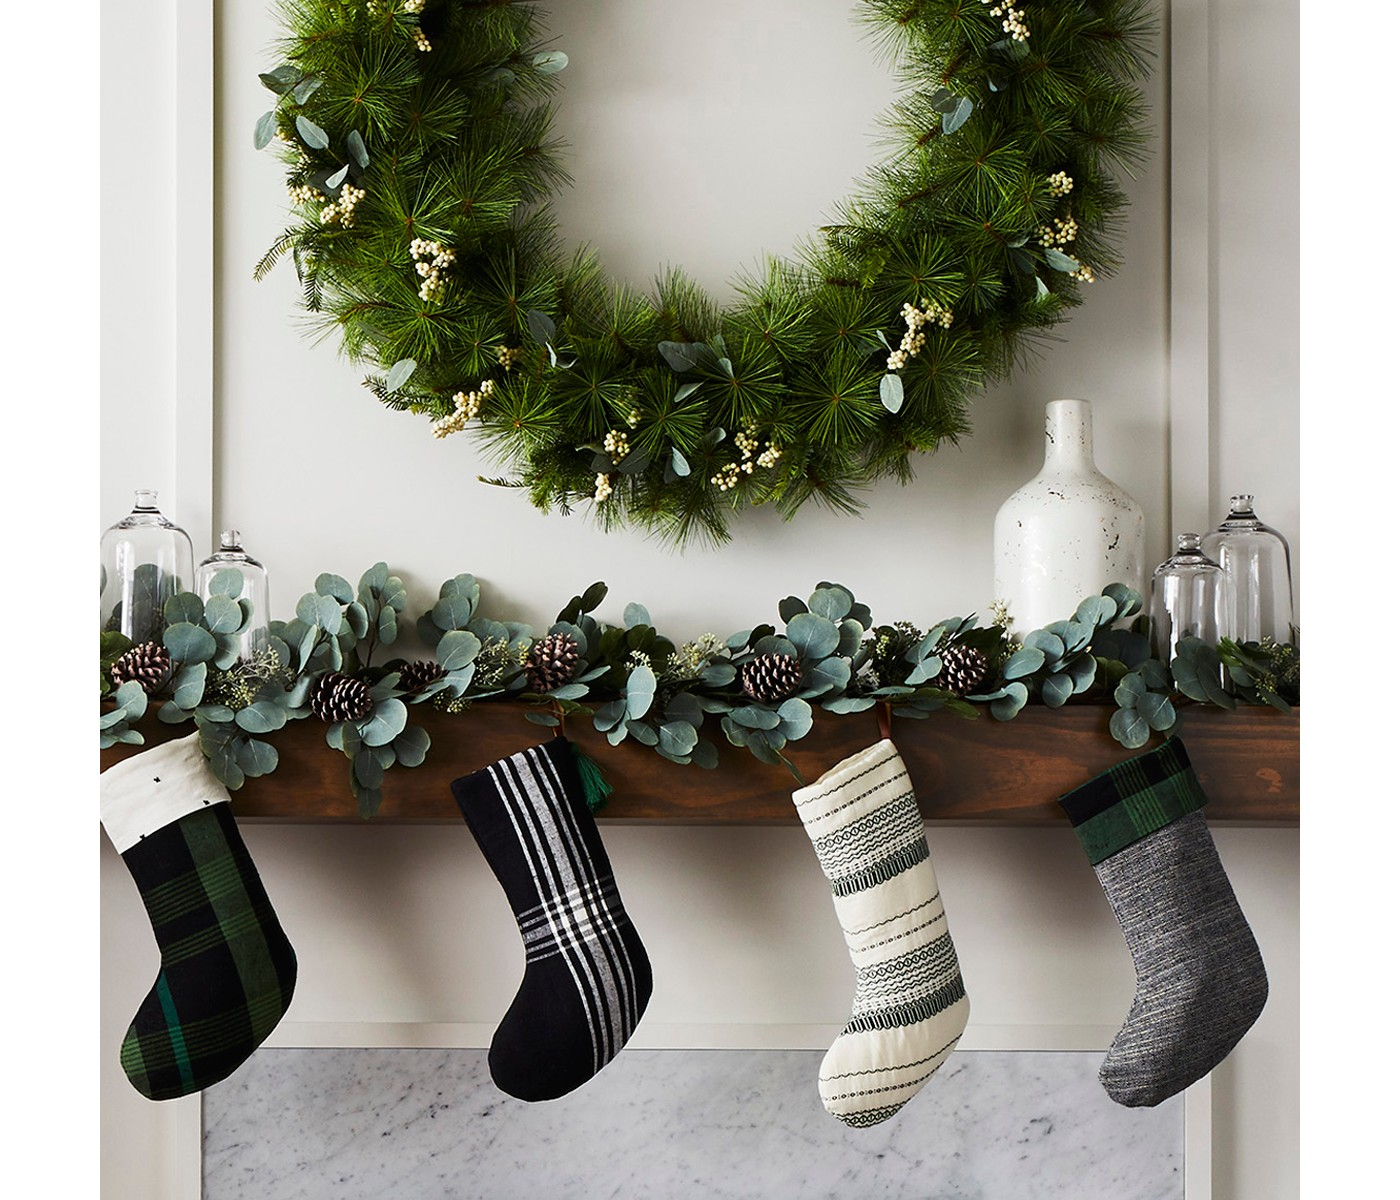 Joanna Gaines Target Holiday Line, Stockings